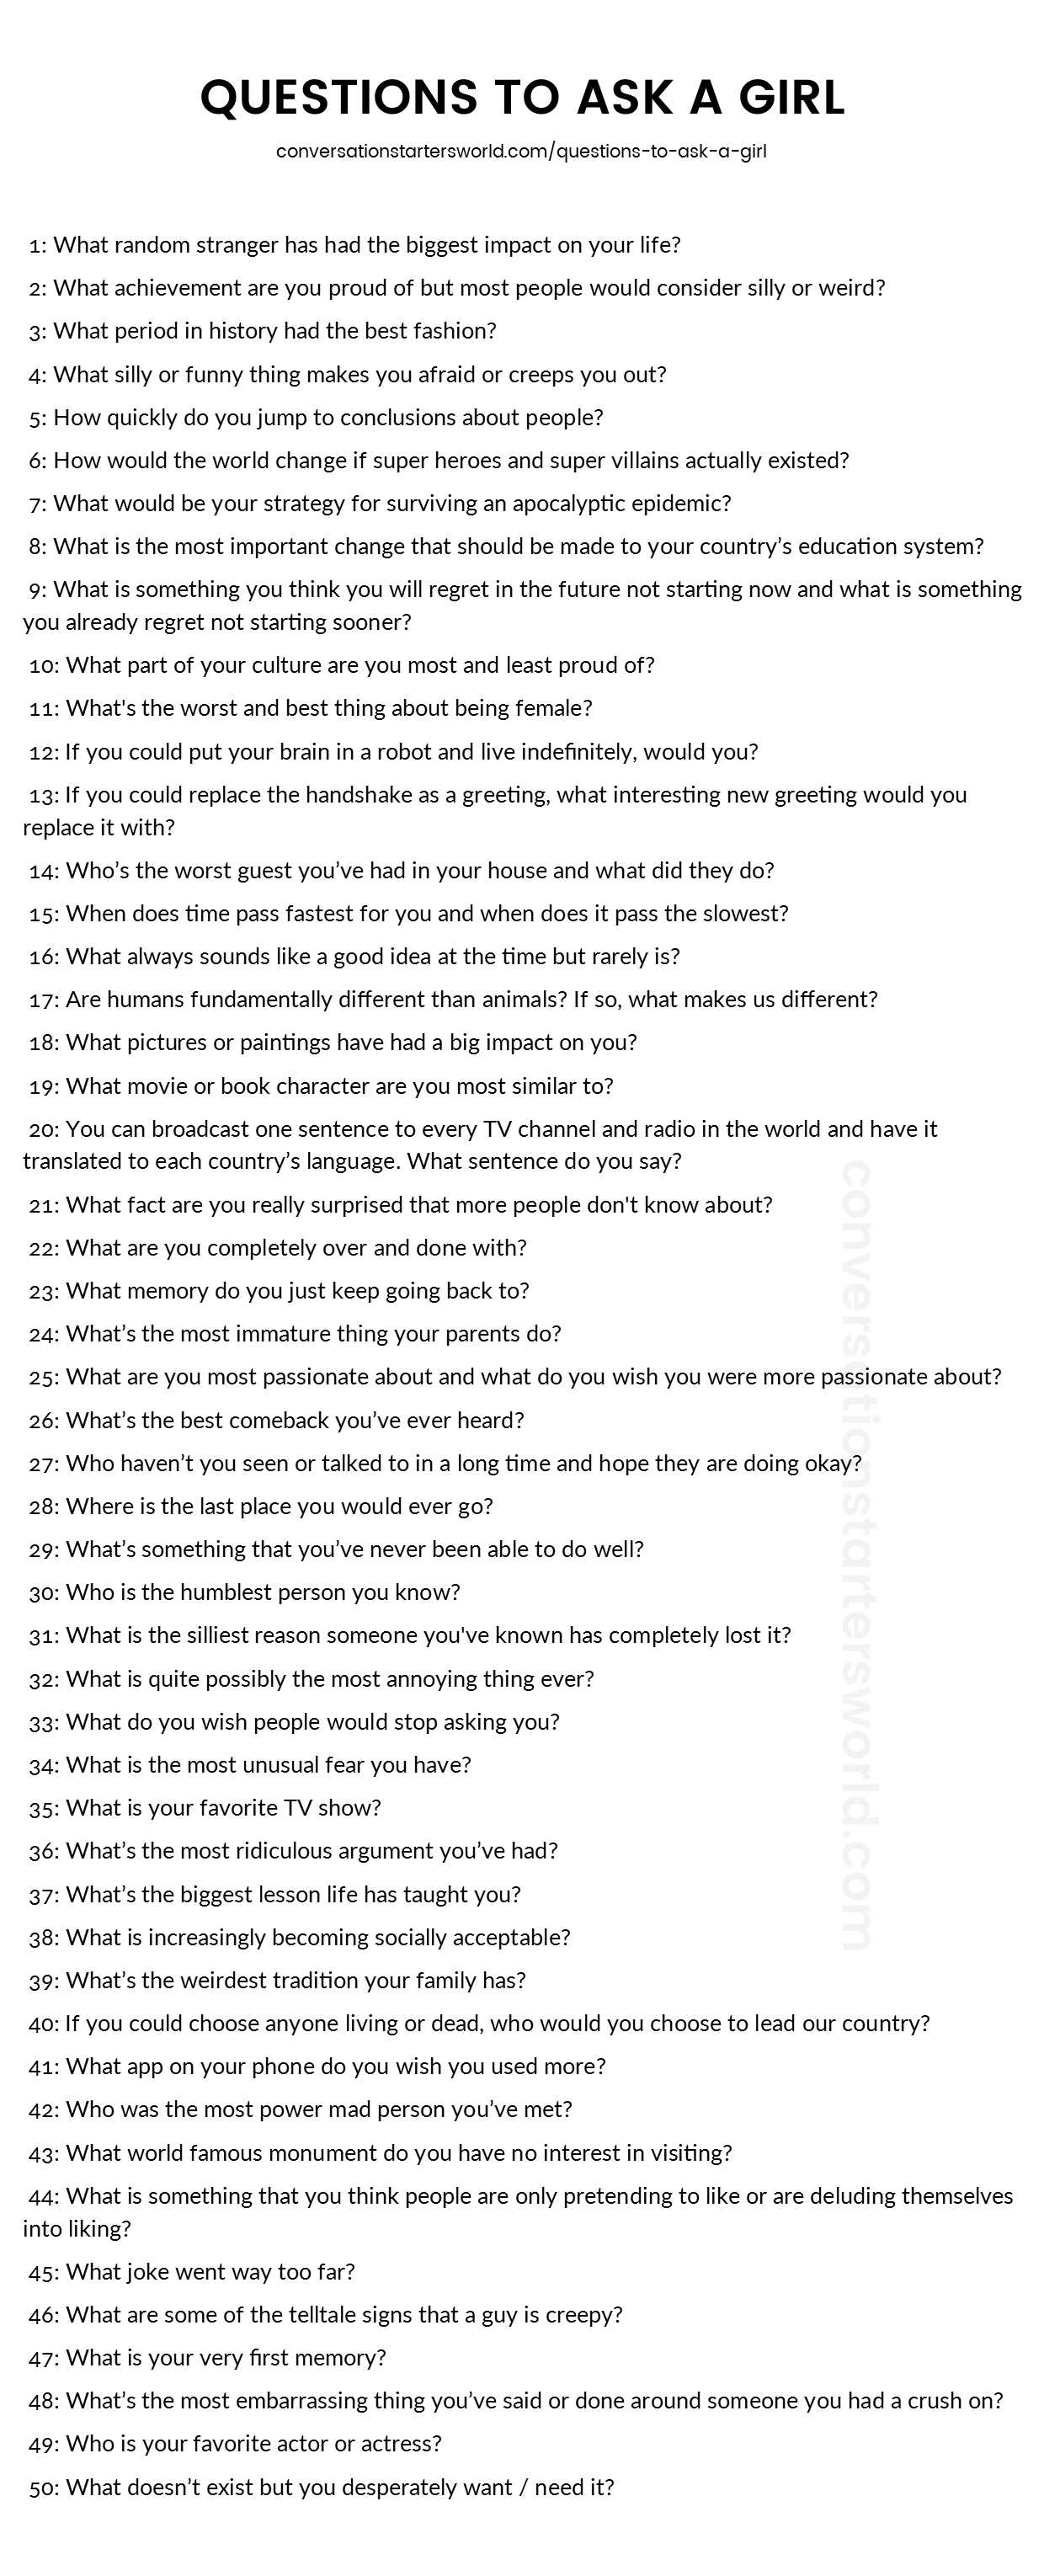 Daring questions to ask a girl